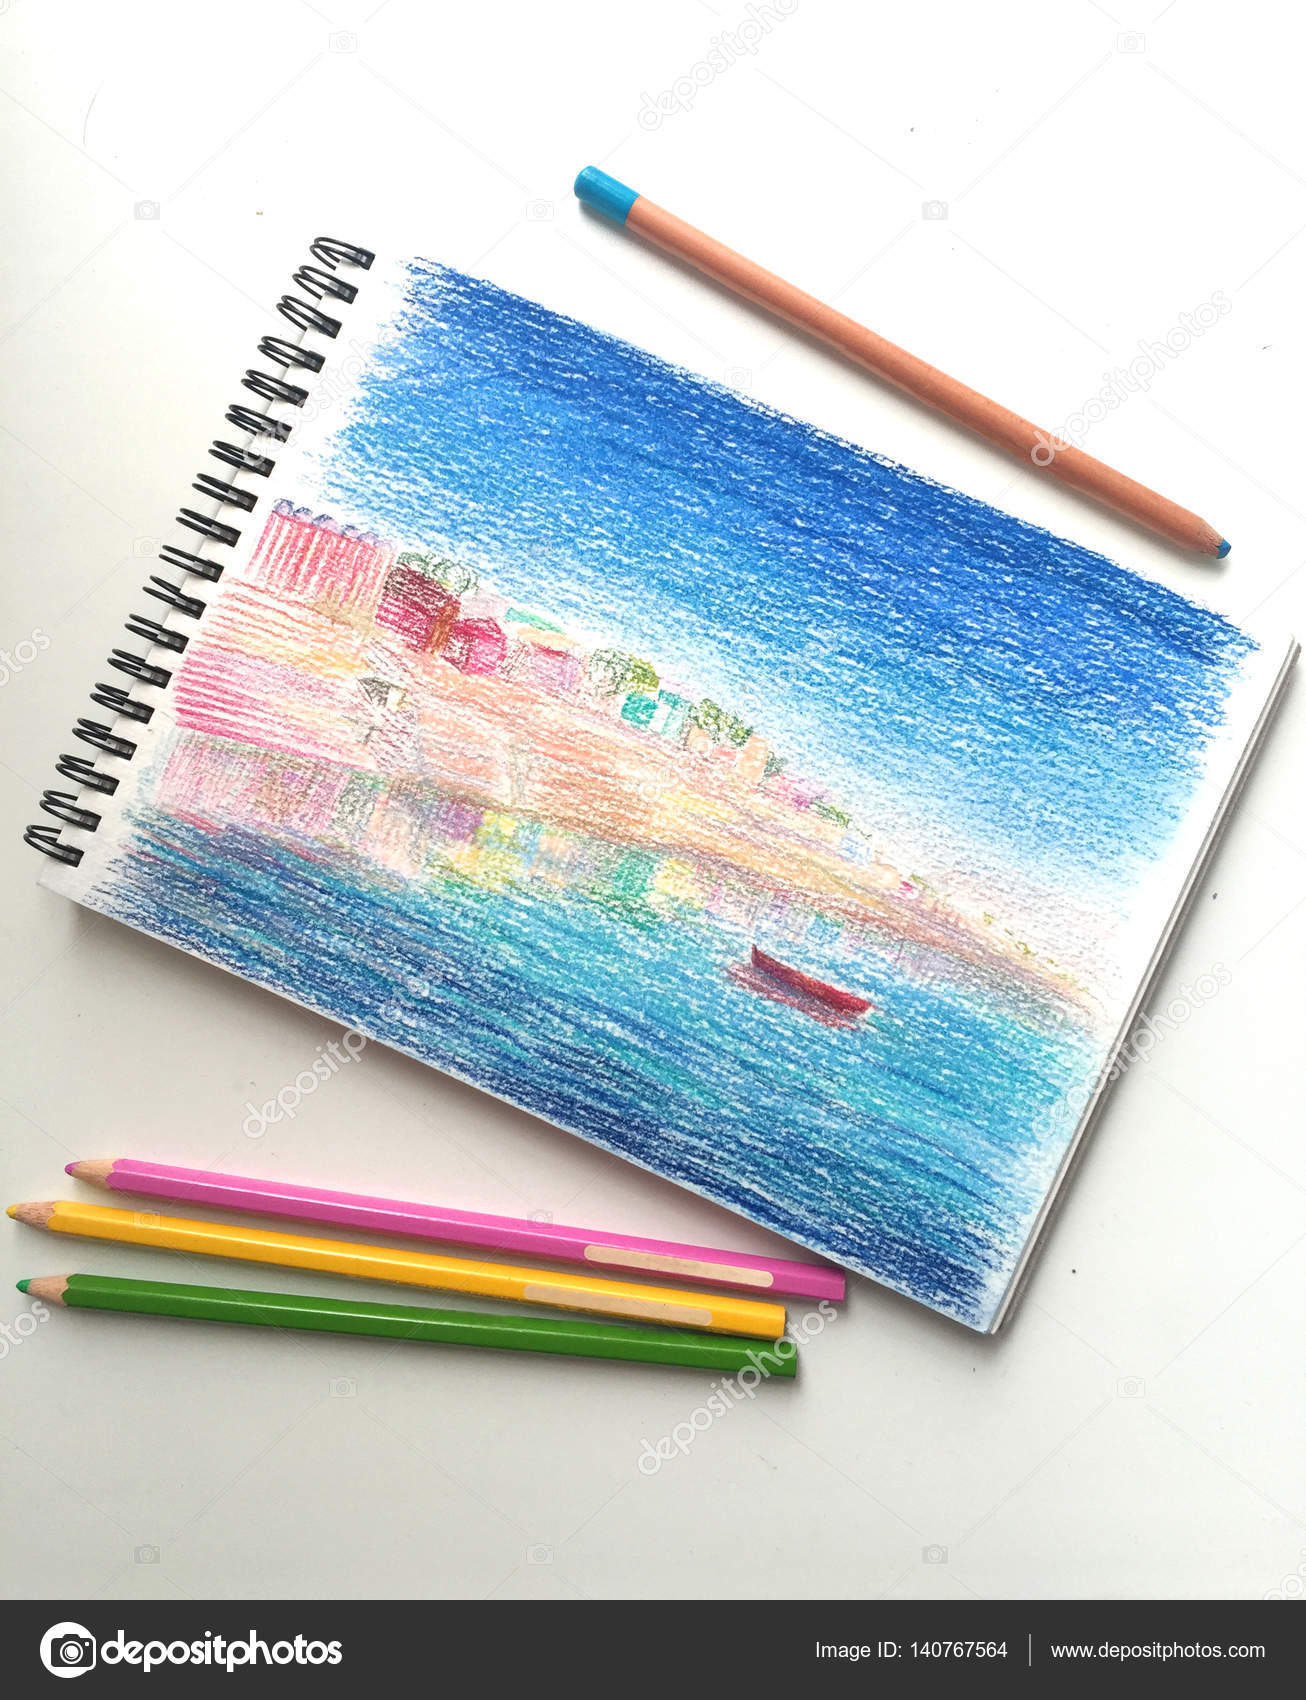 pencil drawing and pencils city landscape by pencils stock photo